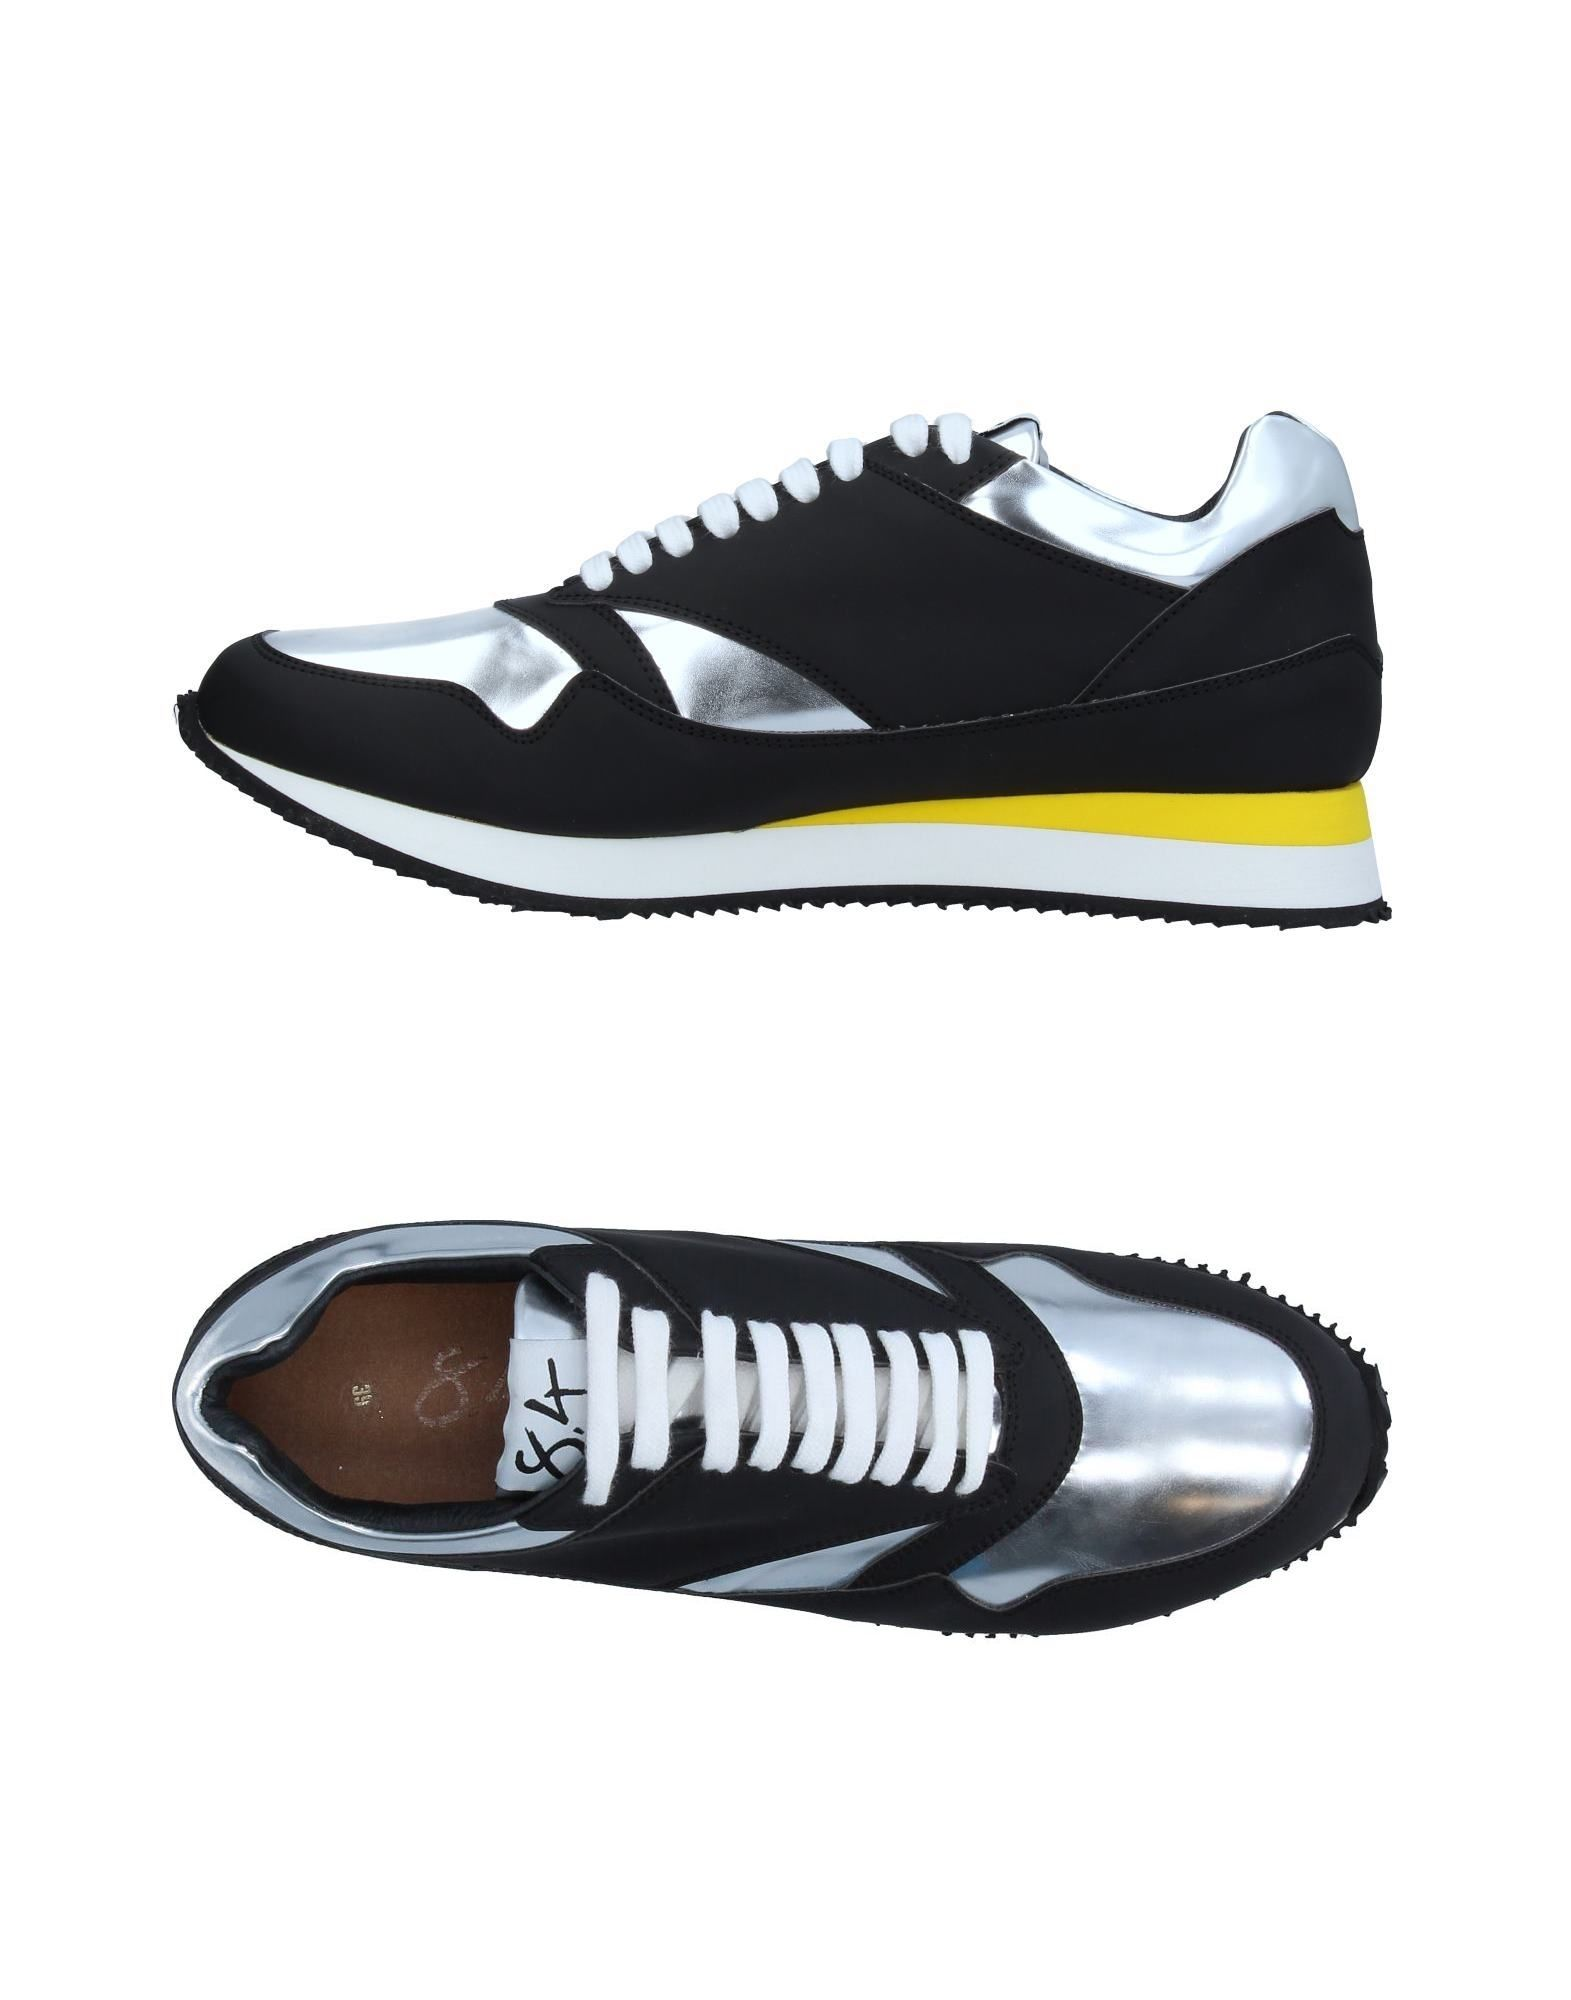 Moda Sneakers Sneakers Moda 8.4 Donna - 11367336AB 5a8cce